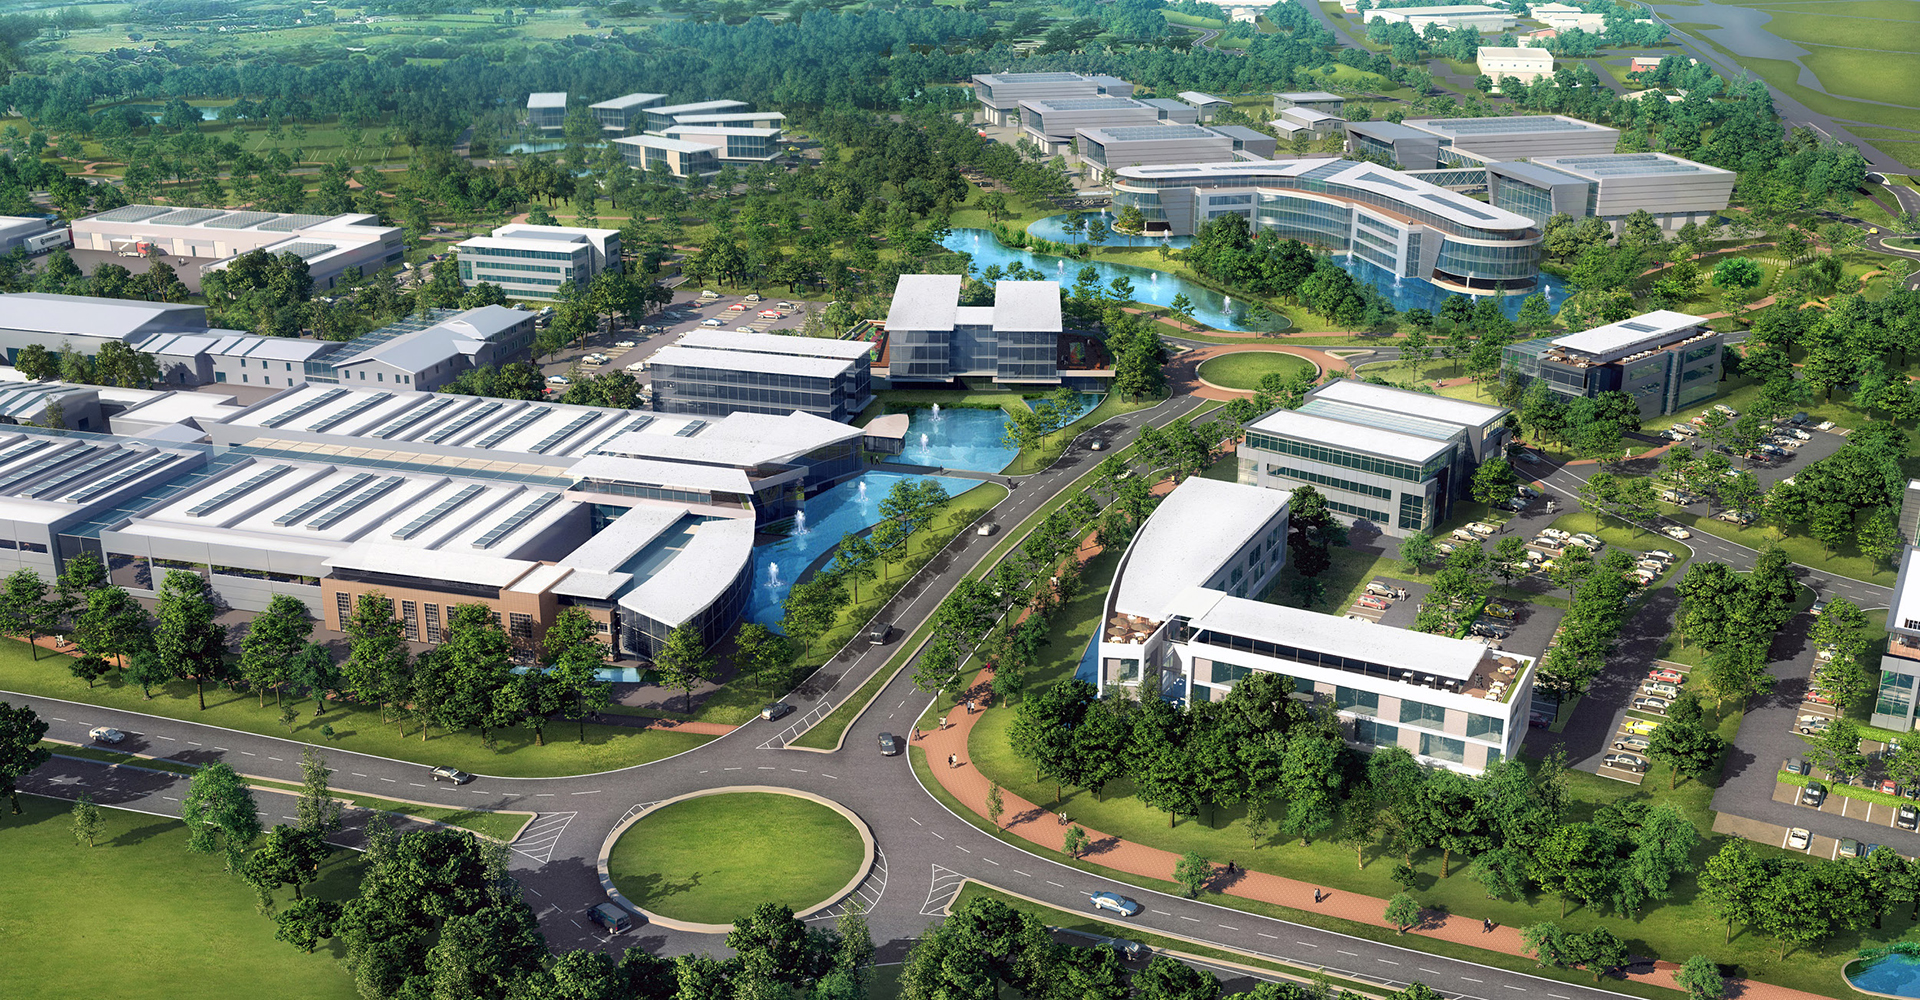 MIRA TECHNOLOGY PARK - VISUAL